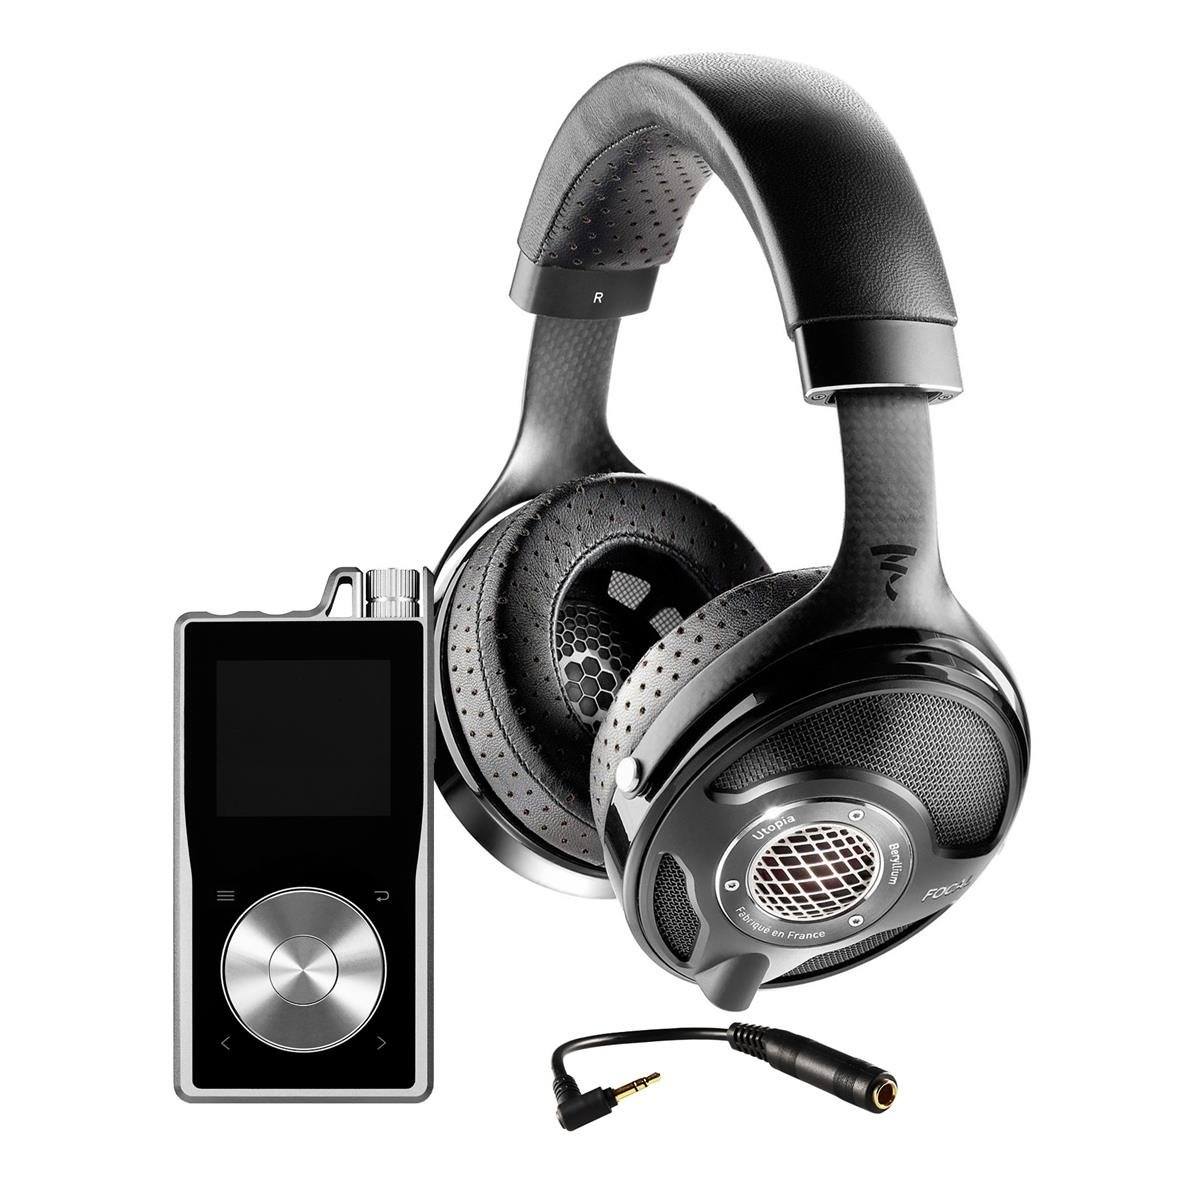 Focal Utopia open-back over-earヘッドフォンwith Questyle qp2r高解像度ポータブルデジタルオーディオプレーヤー(シルバー) B07FXY8WZ1